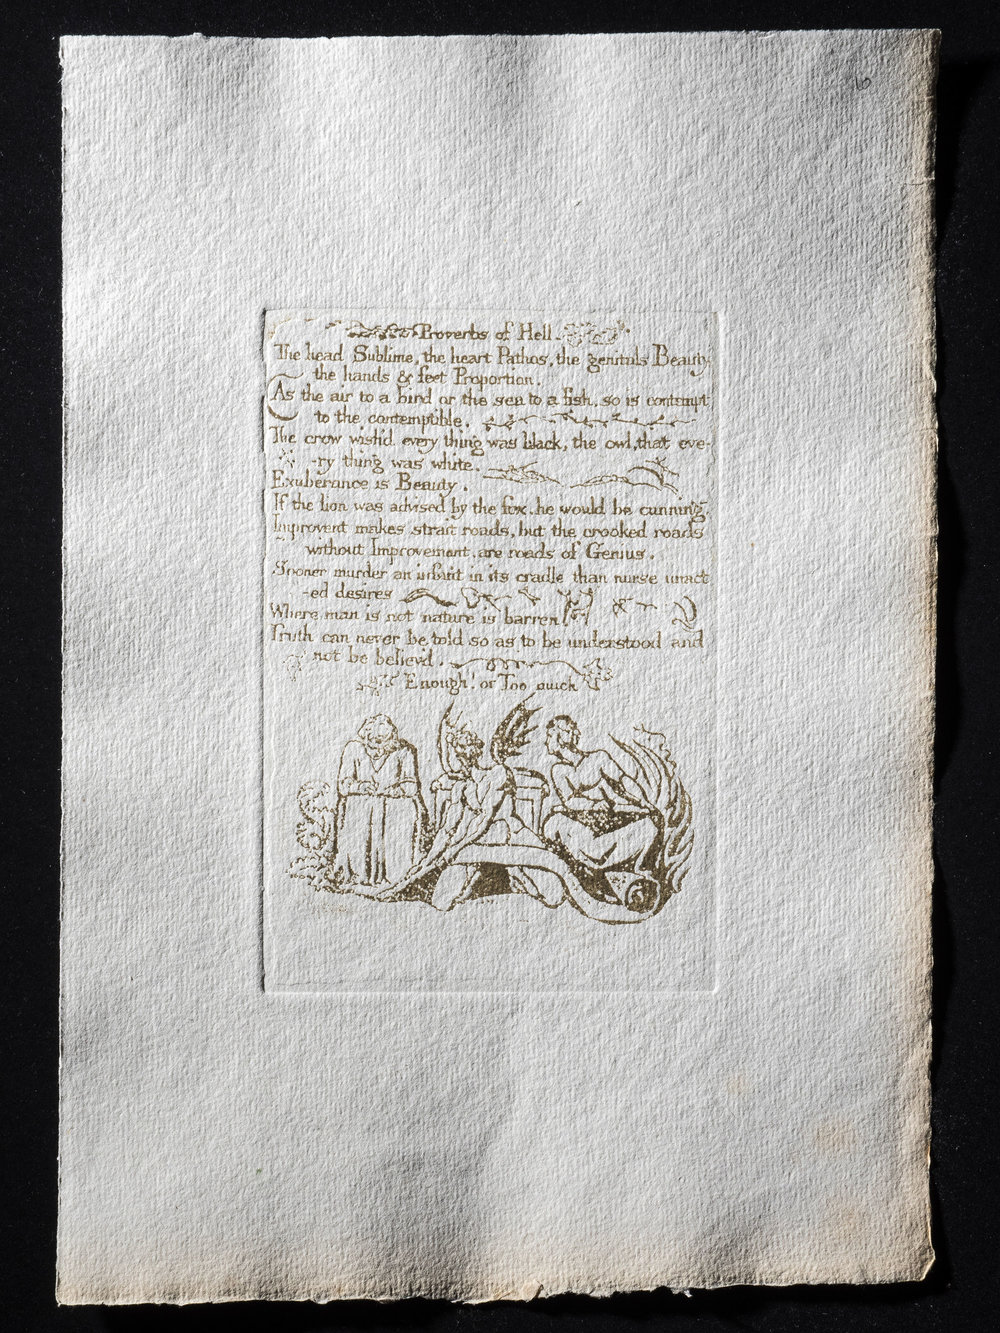 10. Proverbs of Hell, 156 x 104 mm